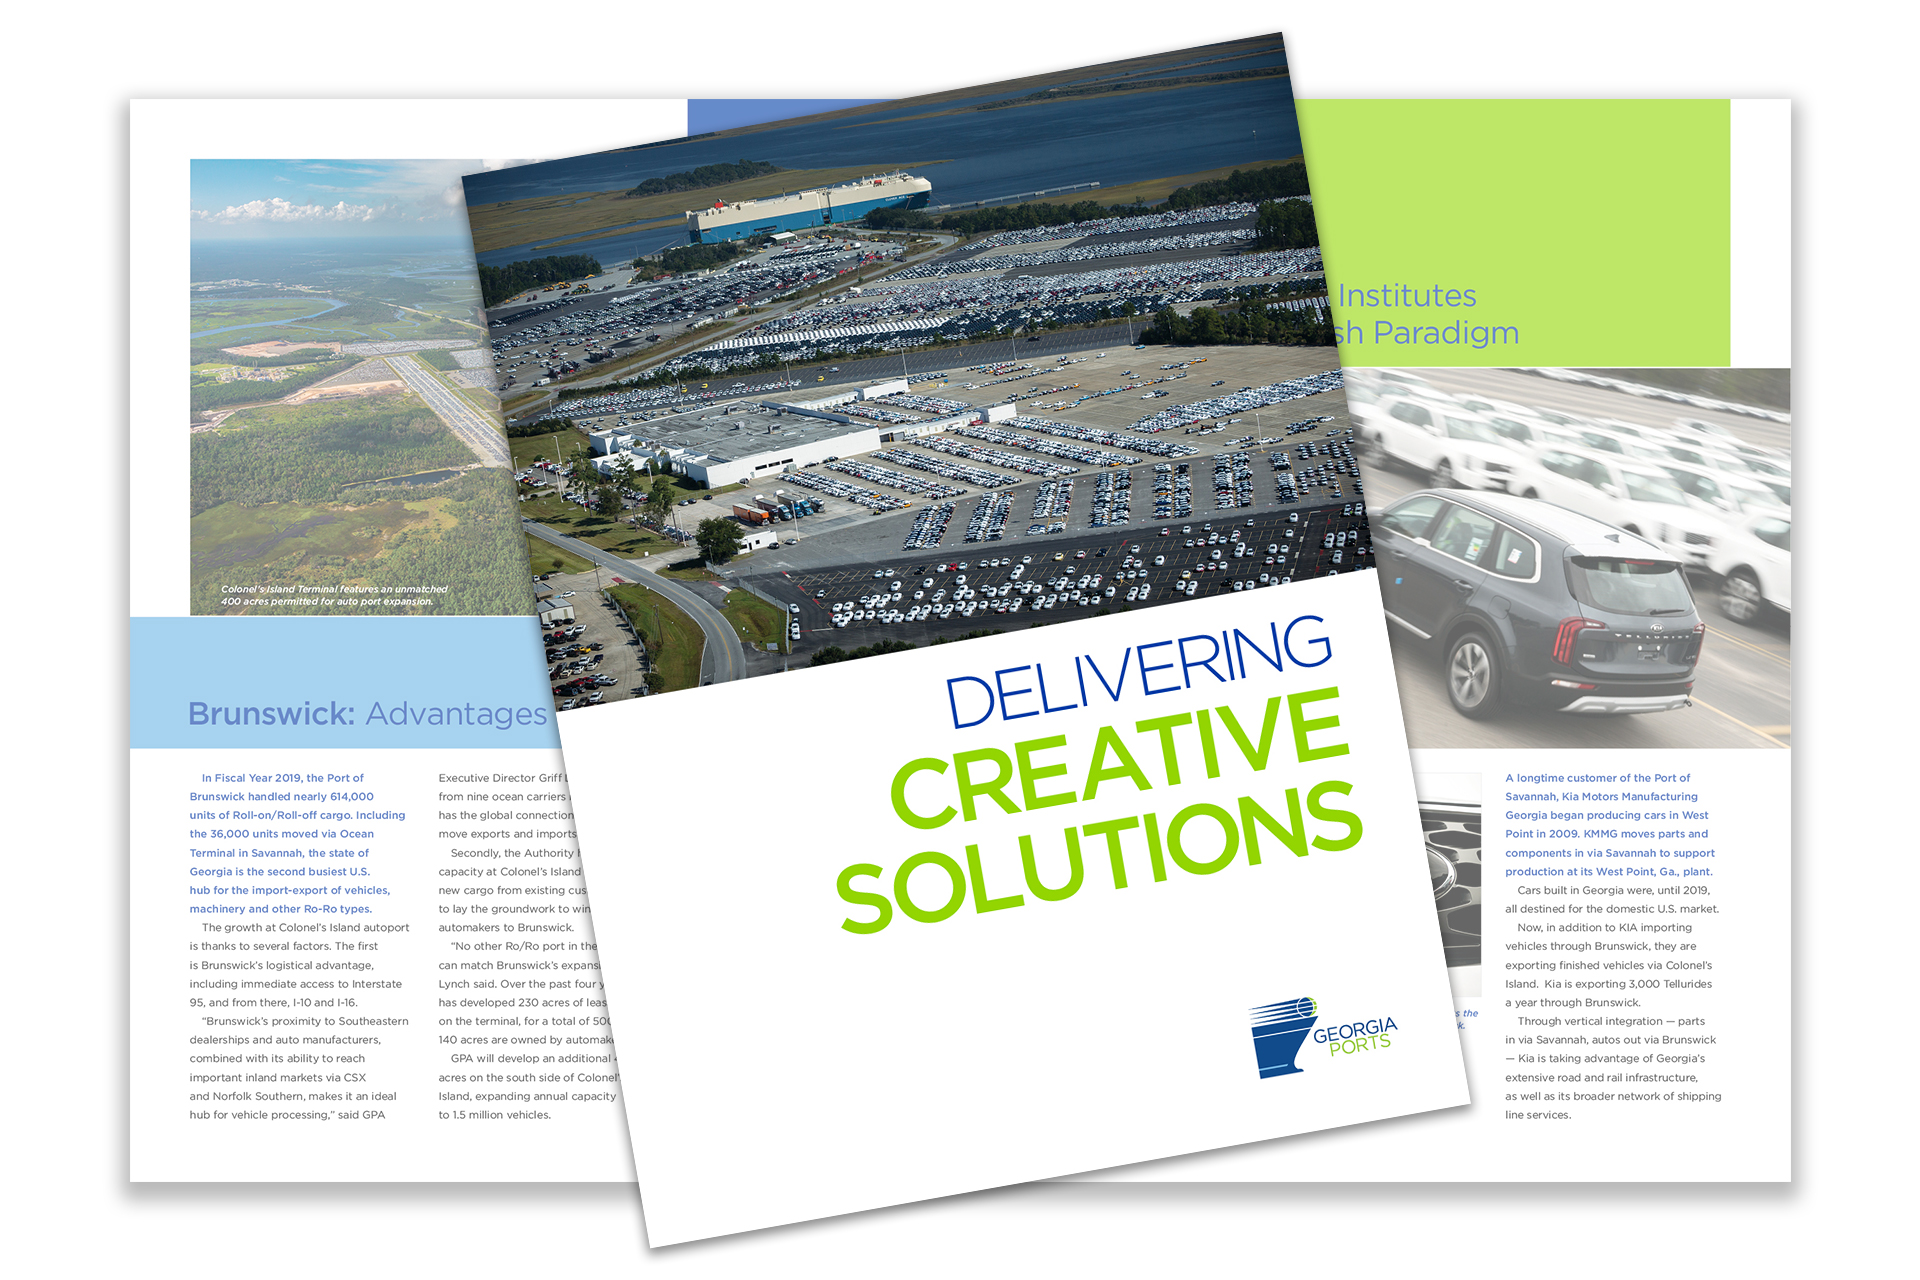 CLICK TO DOWNLOAD   2019 Georgia Ports State of the Port Brochure - Brunswick (PDF - 1.7MB)